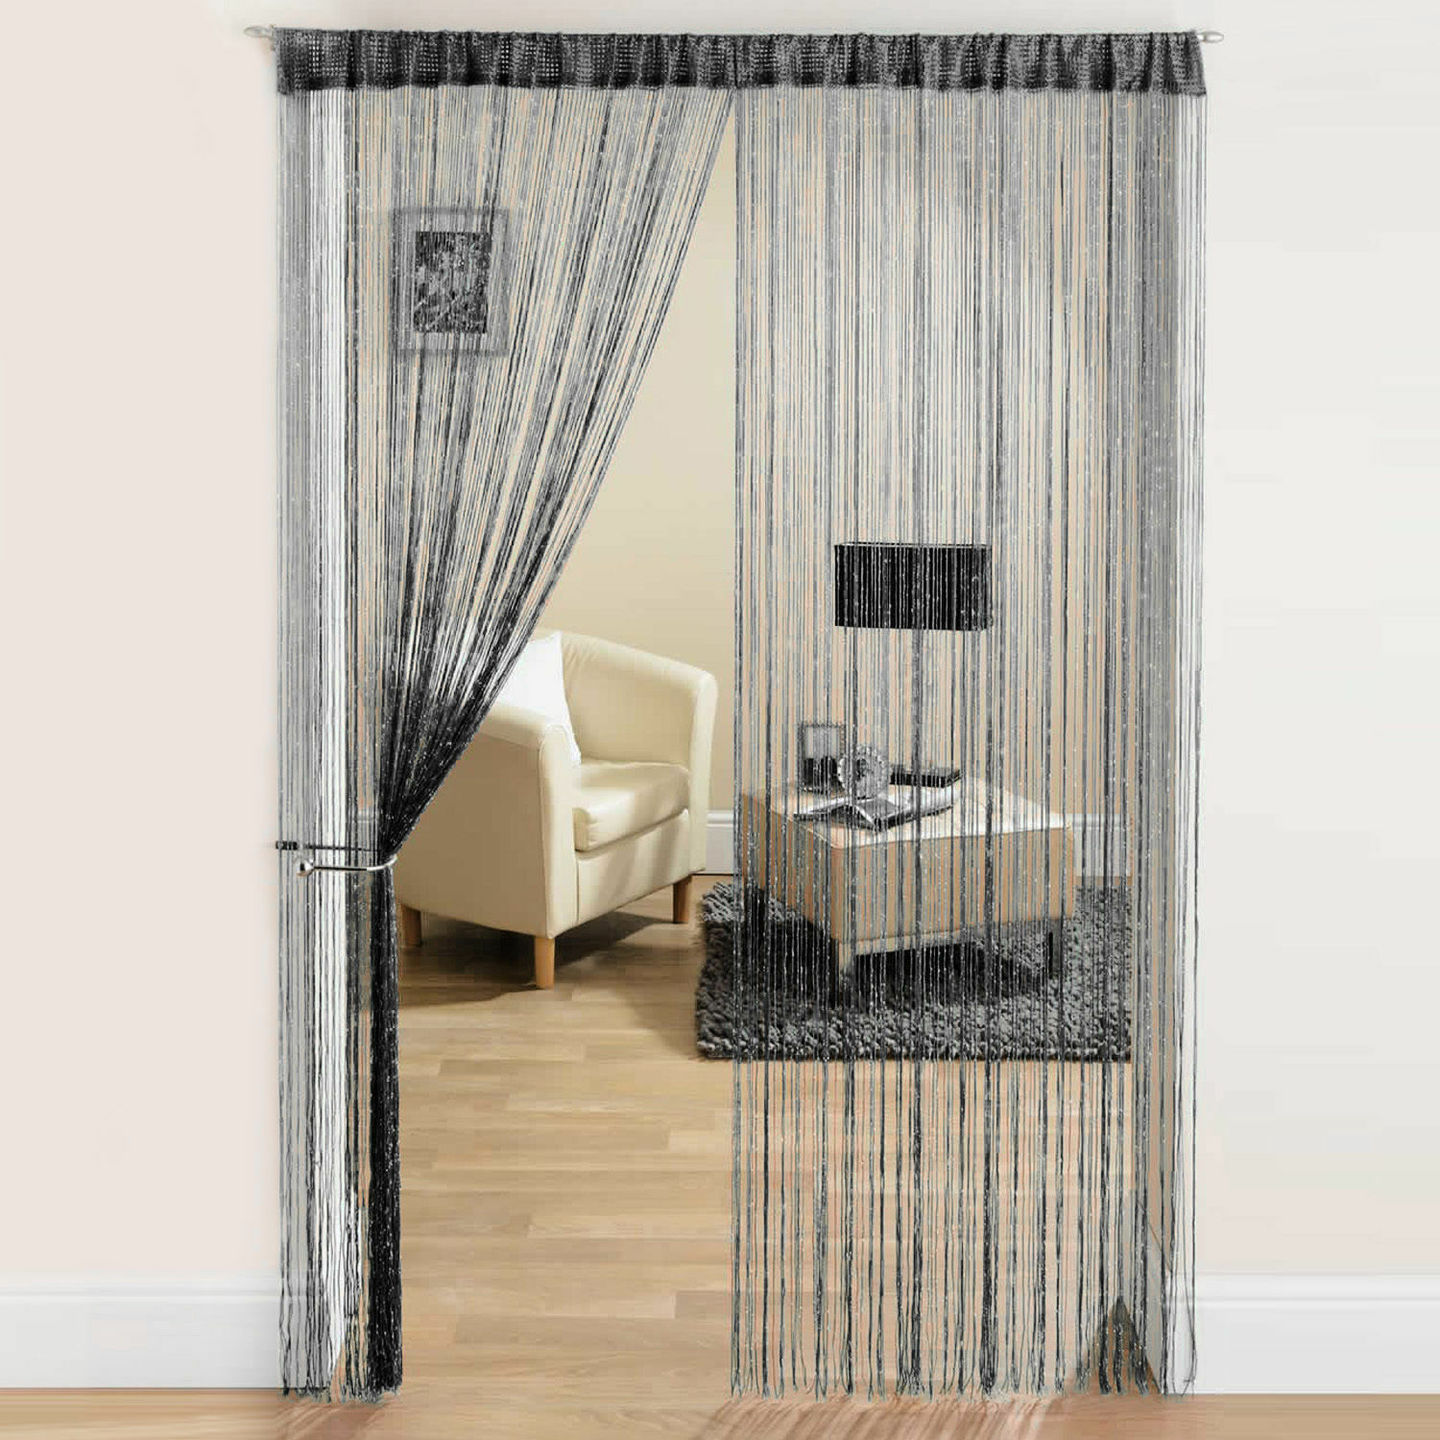 Interior Curtains: Stylish Zoning and Decoration Element. Glass chains to delimit interior space